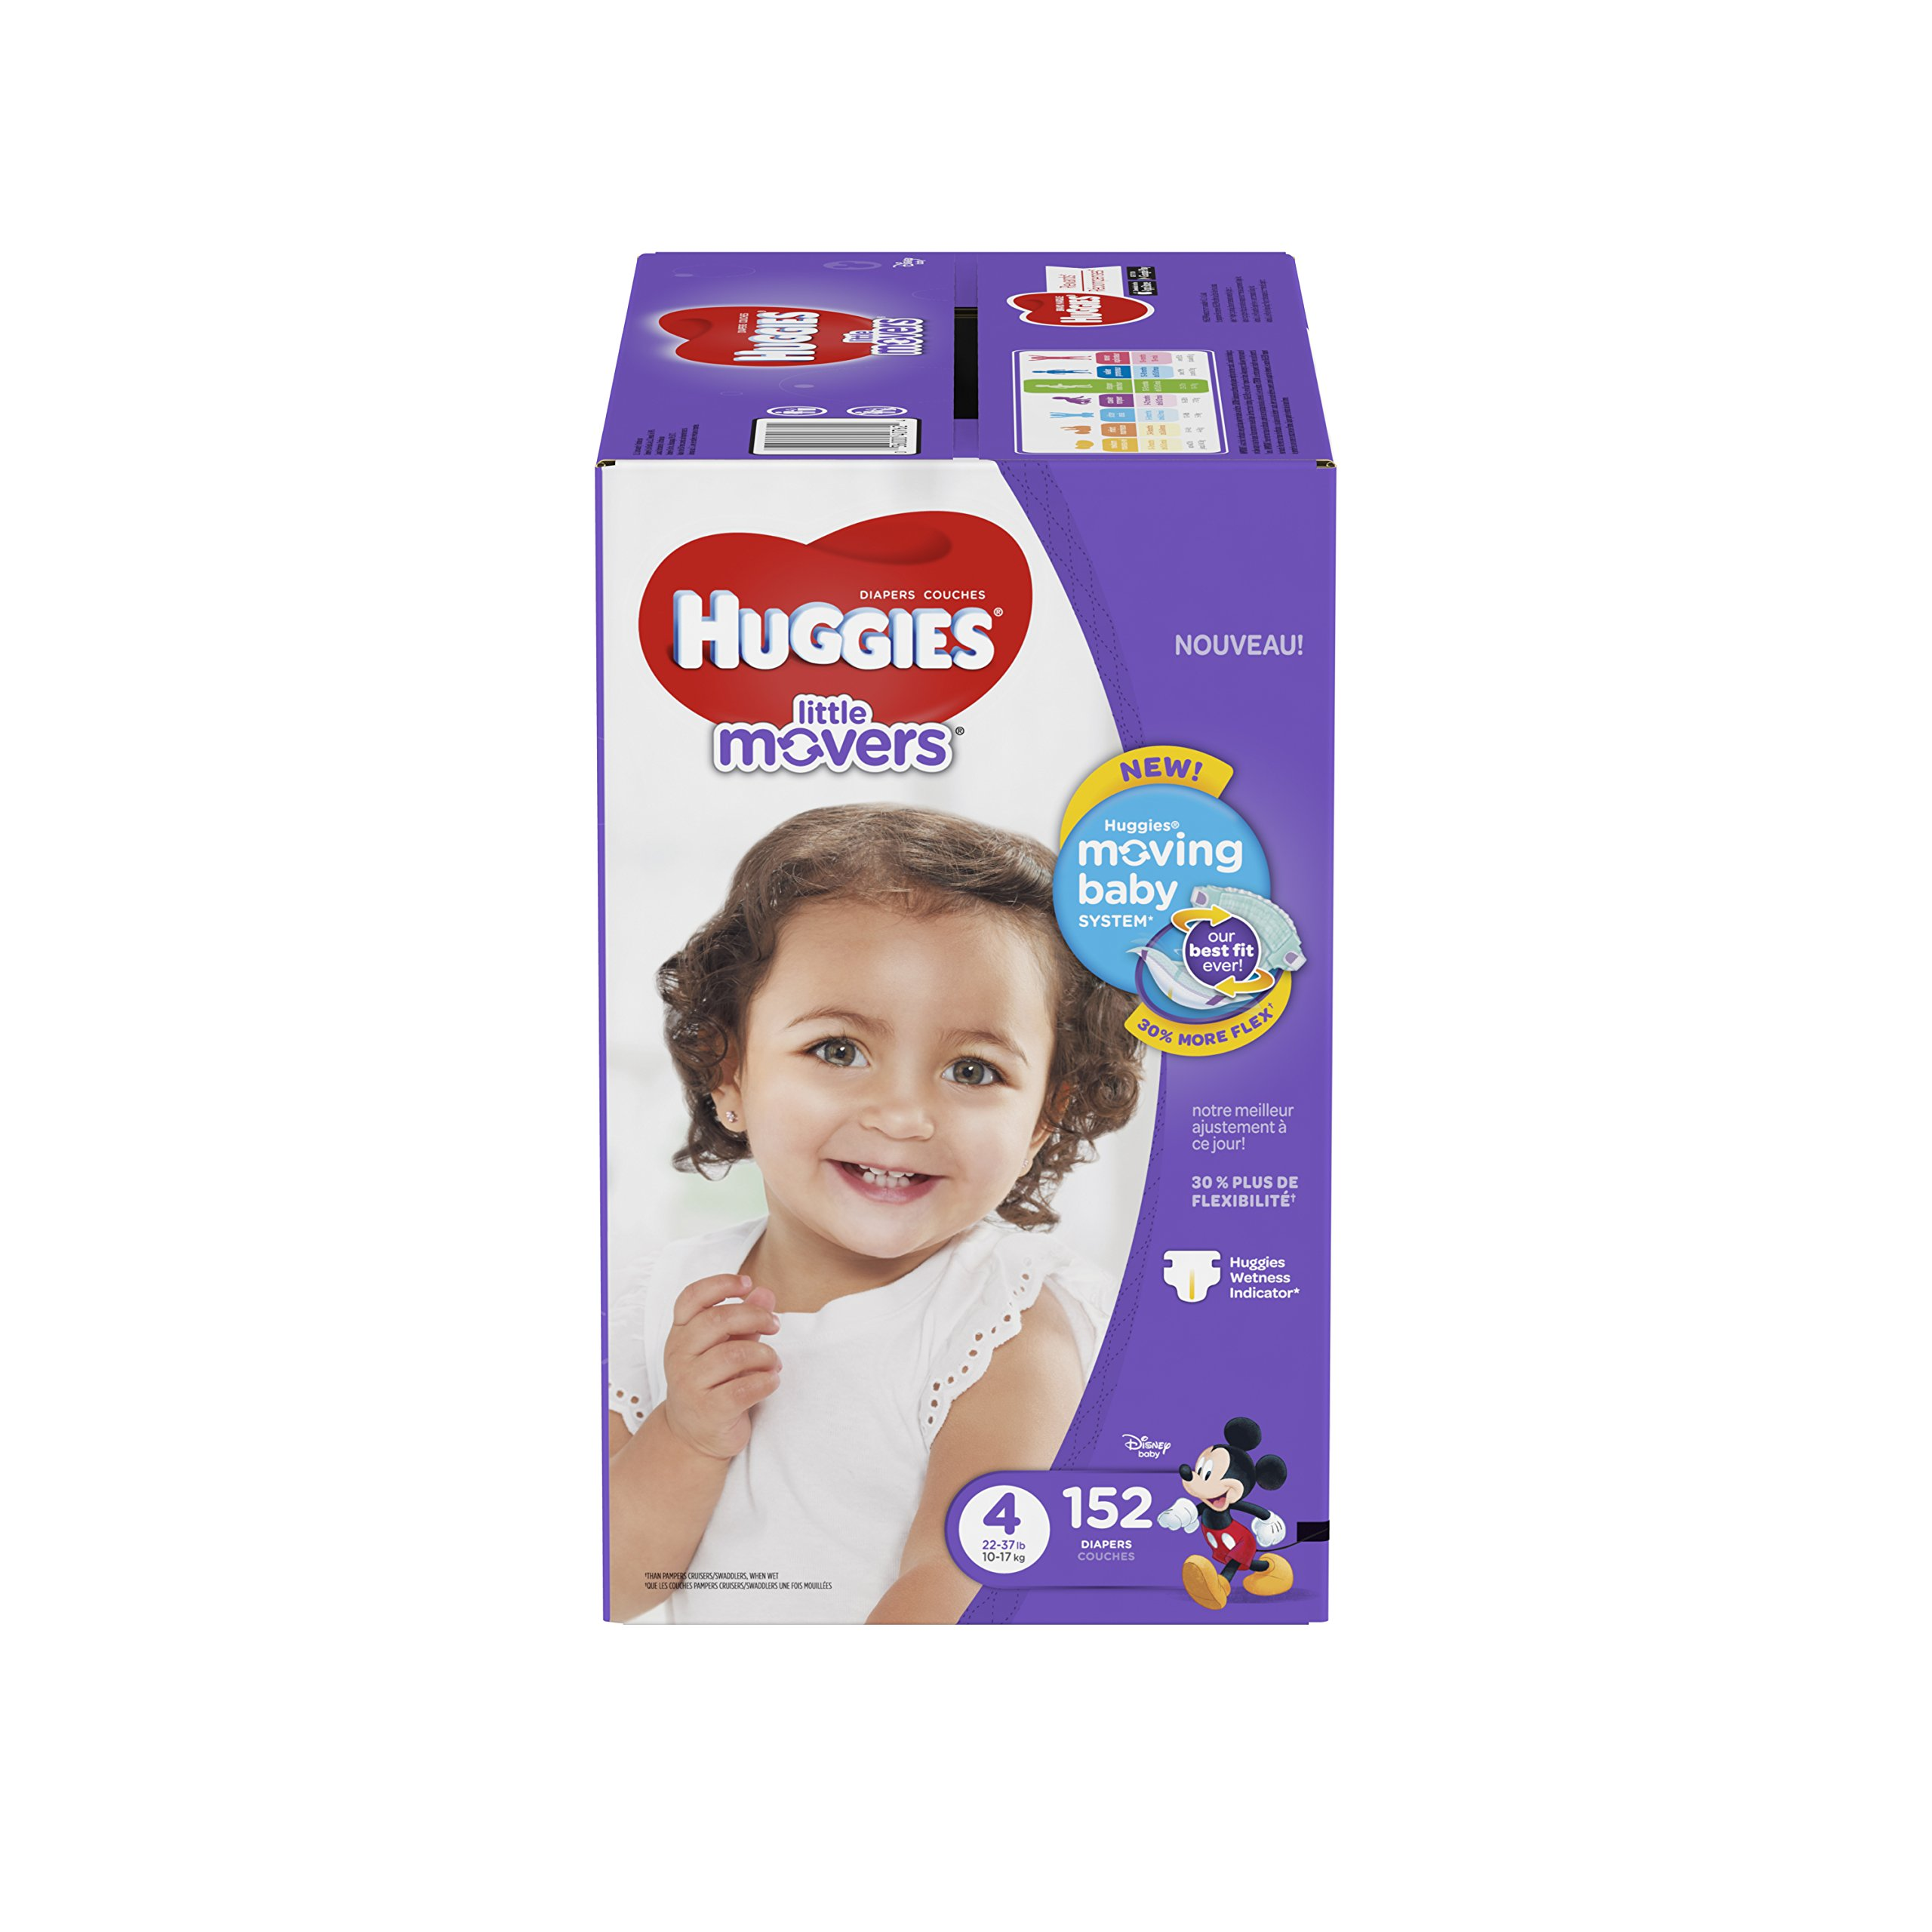 HUGGIES Little Movers Diapers, Size 4, For 22 - 37 lbs., Box of 152 Baby Diapers for Active Babies, Packaging May Vary